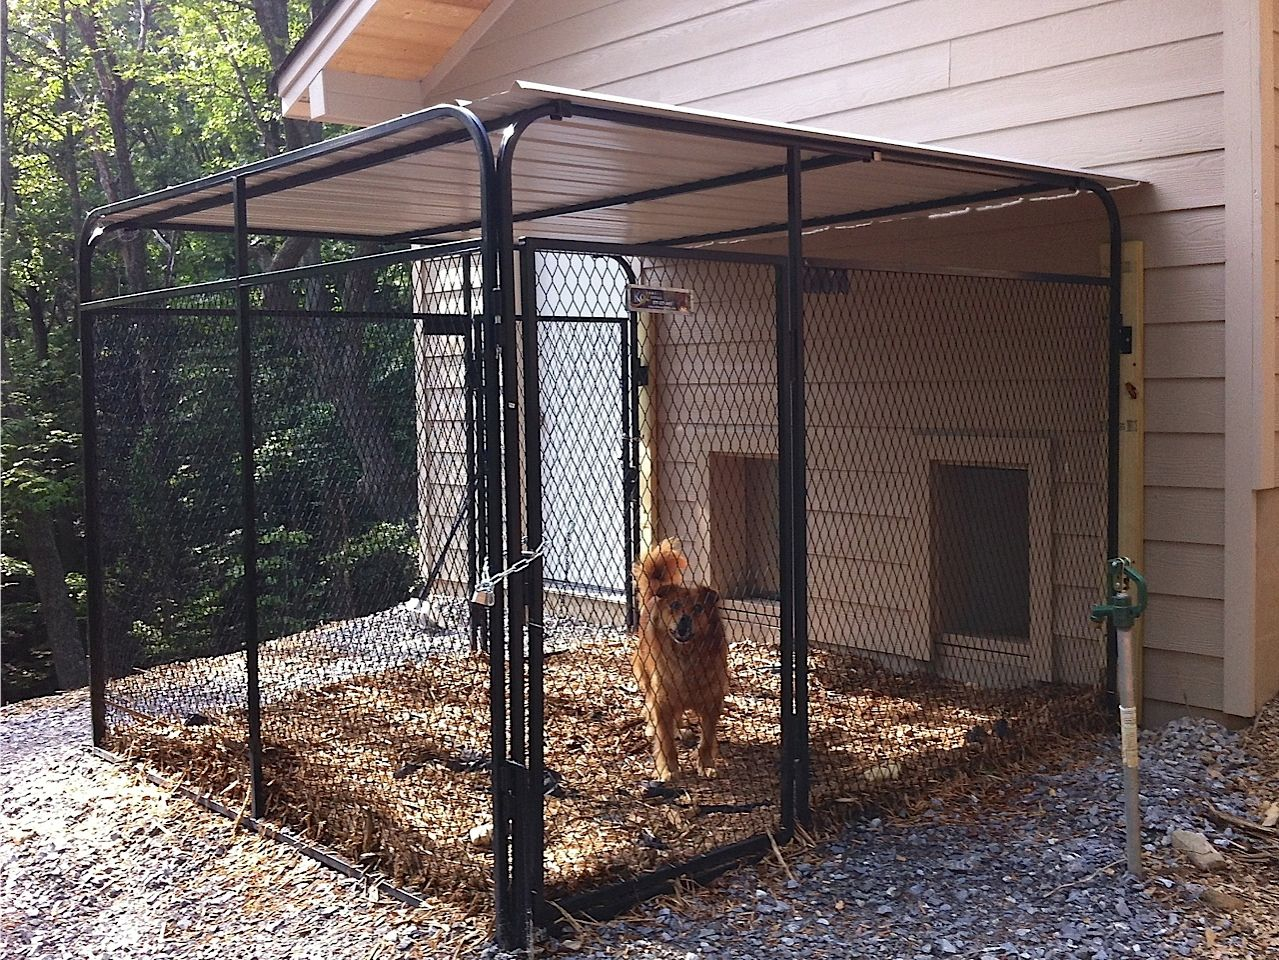 Outside K9 Kennel Multiple Dog Kennels Dogs Dog Runs Dog Houses